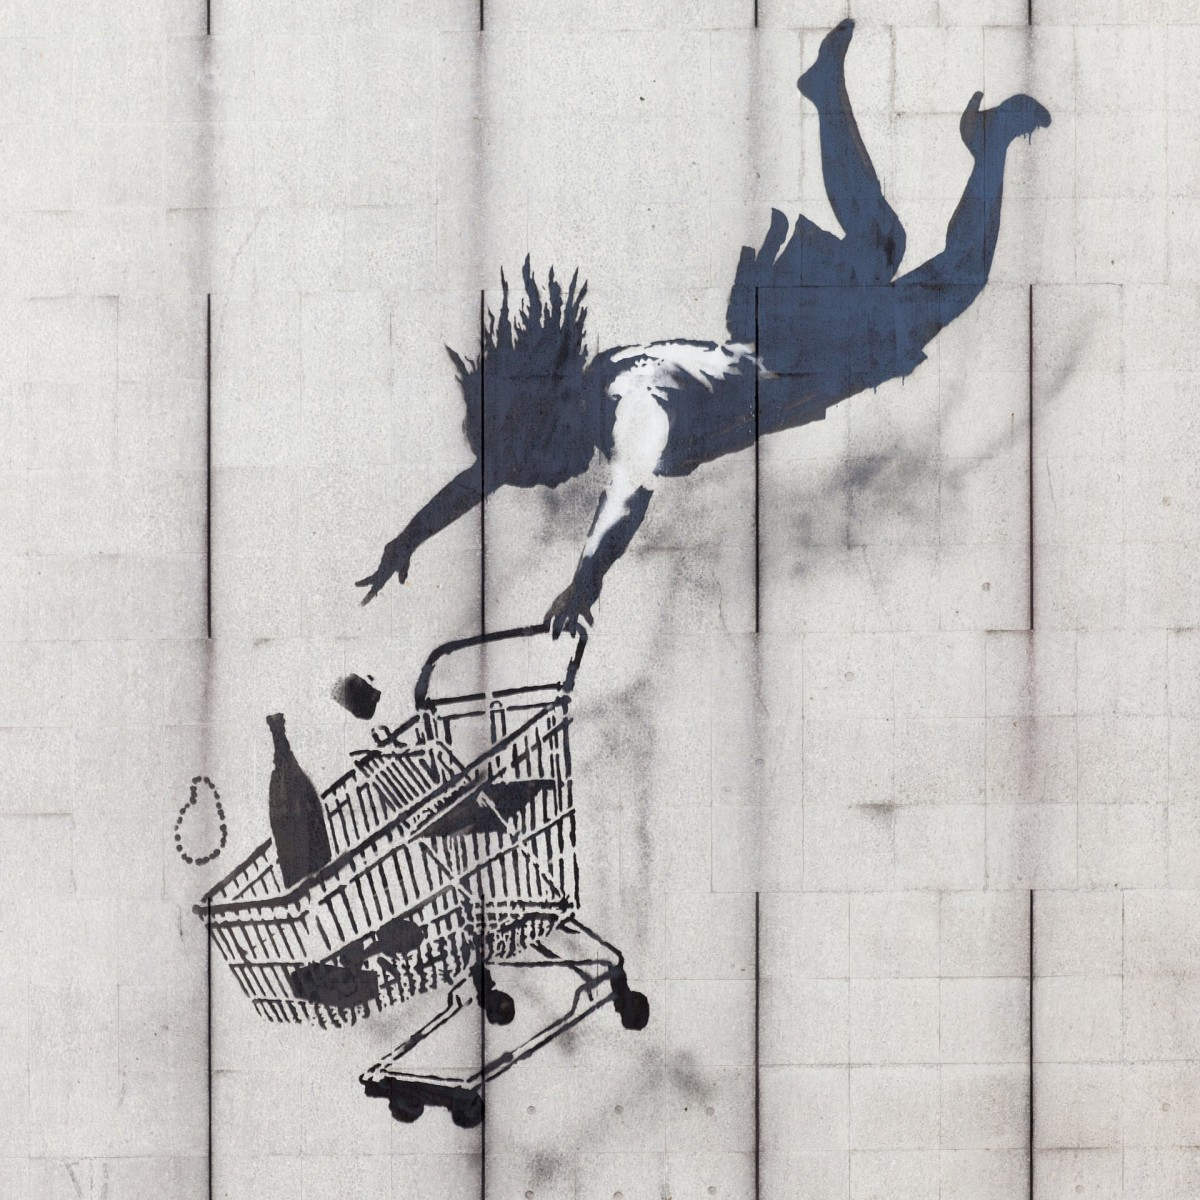 Shop Until You Drop, a Banksy stencil in London